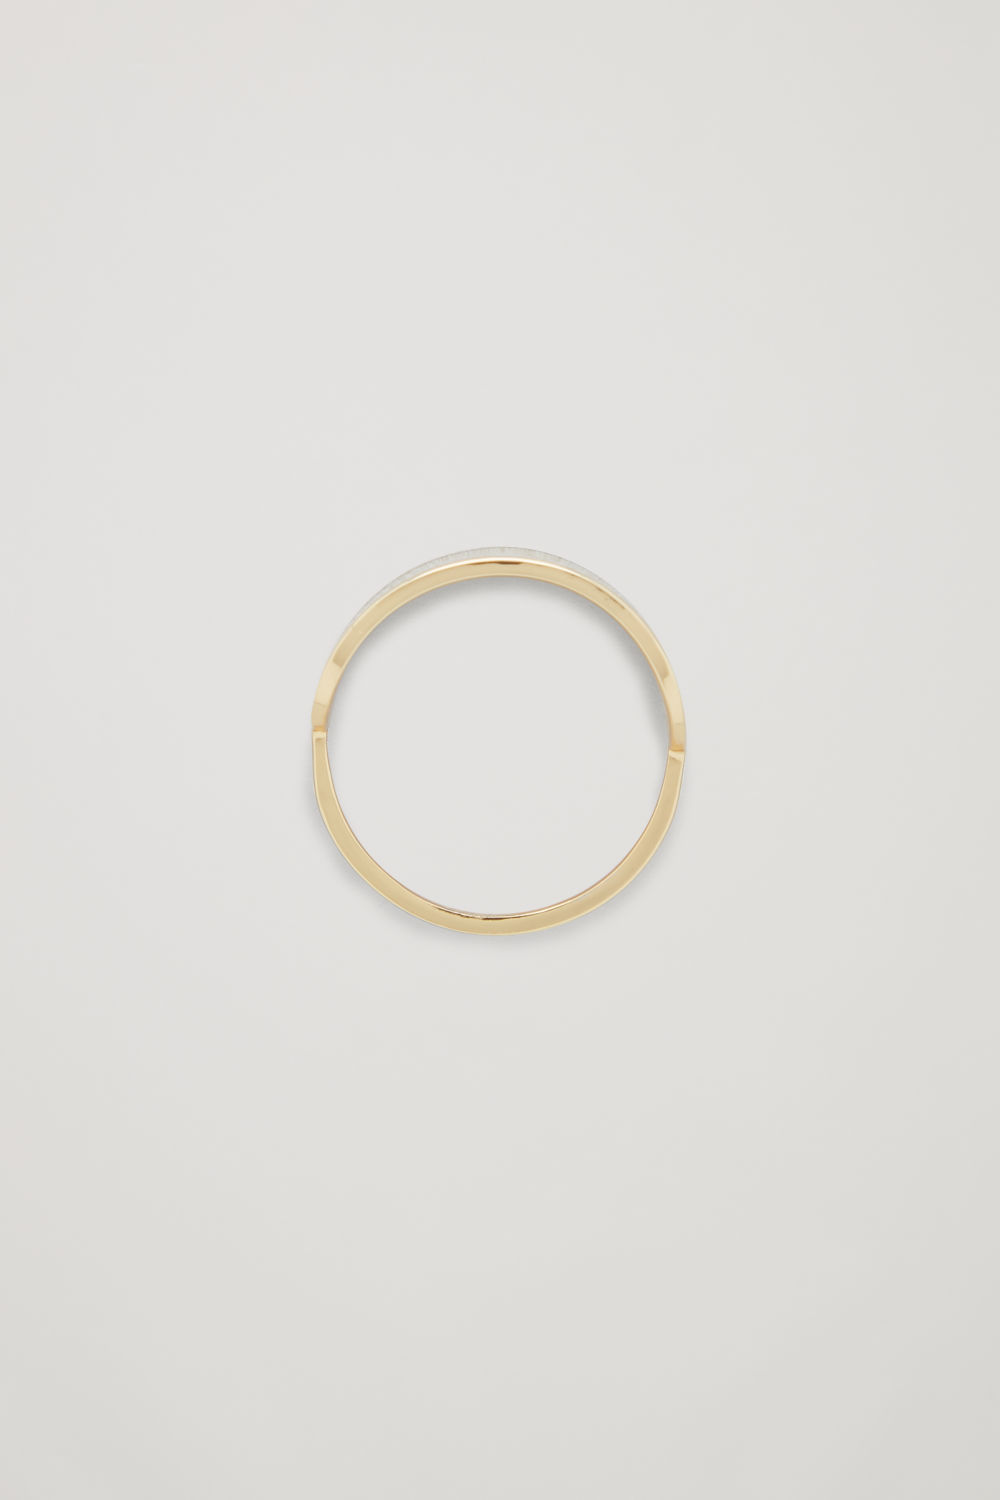 OVAL-SHAPED RING